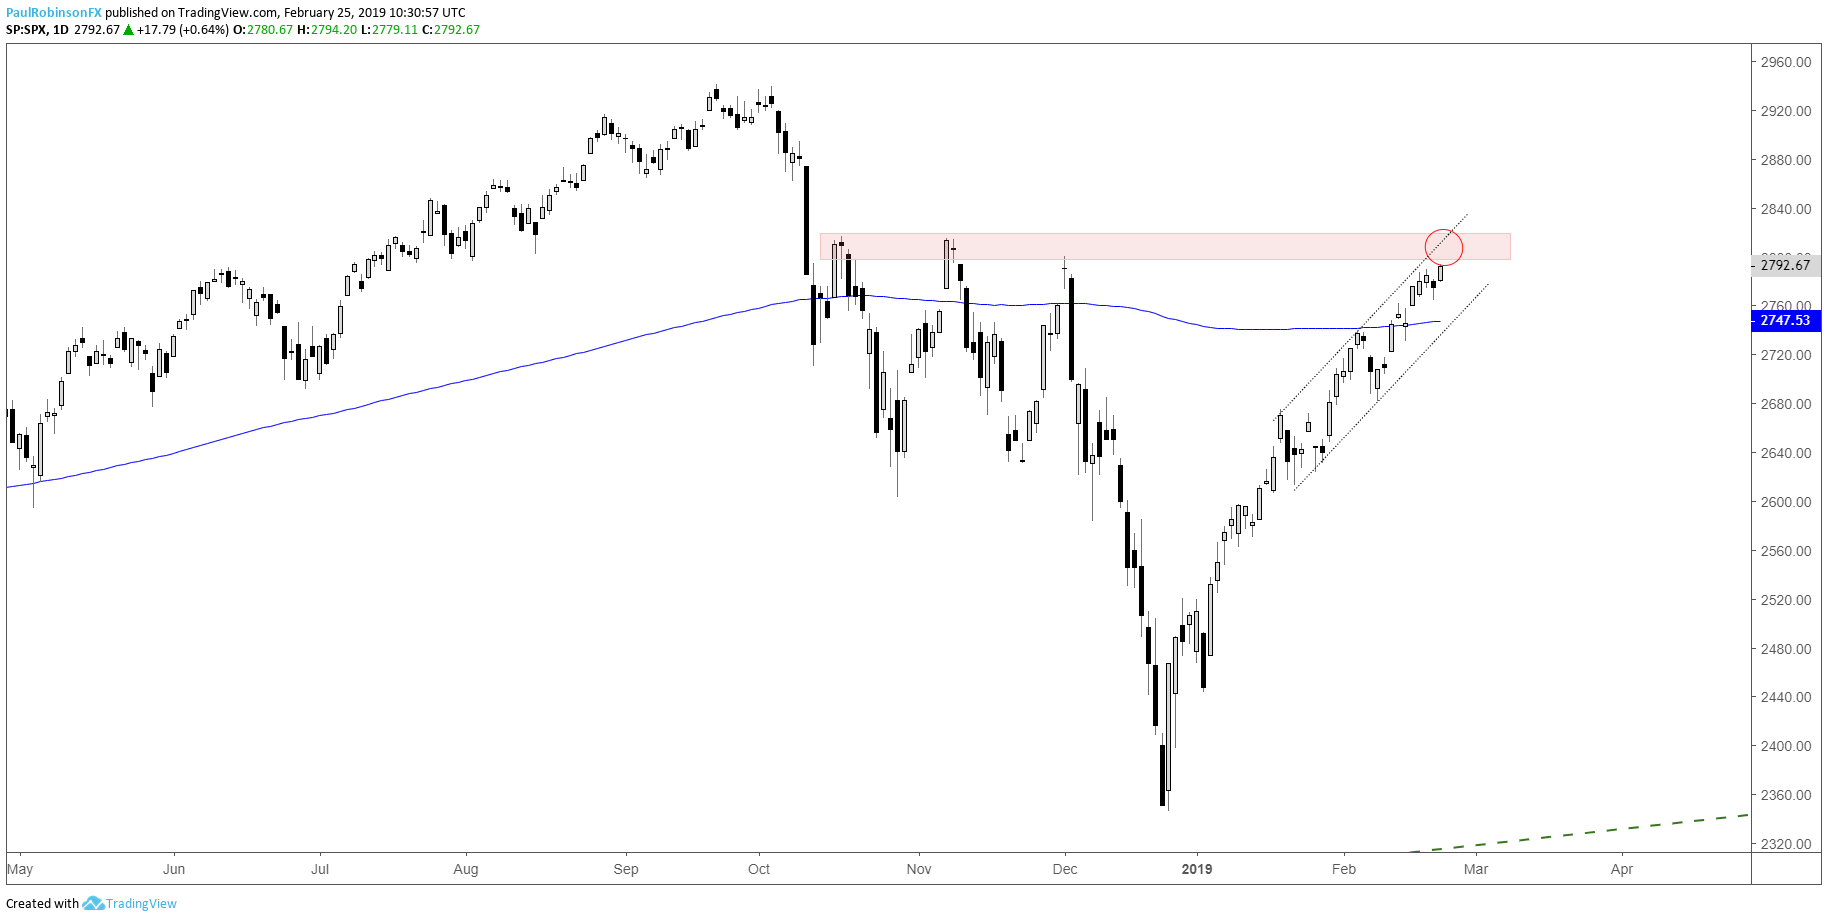 S&P 500, Dow, and Nasdaq 100 Charts: Could Be an Important Week